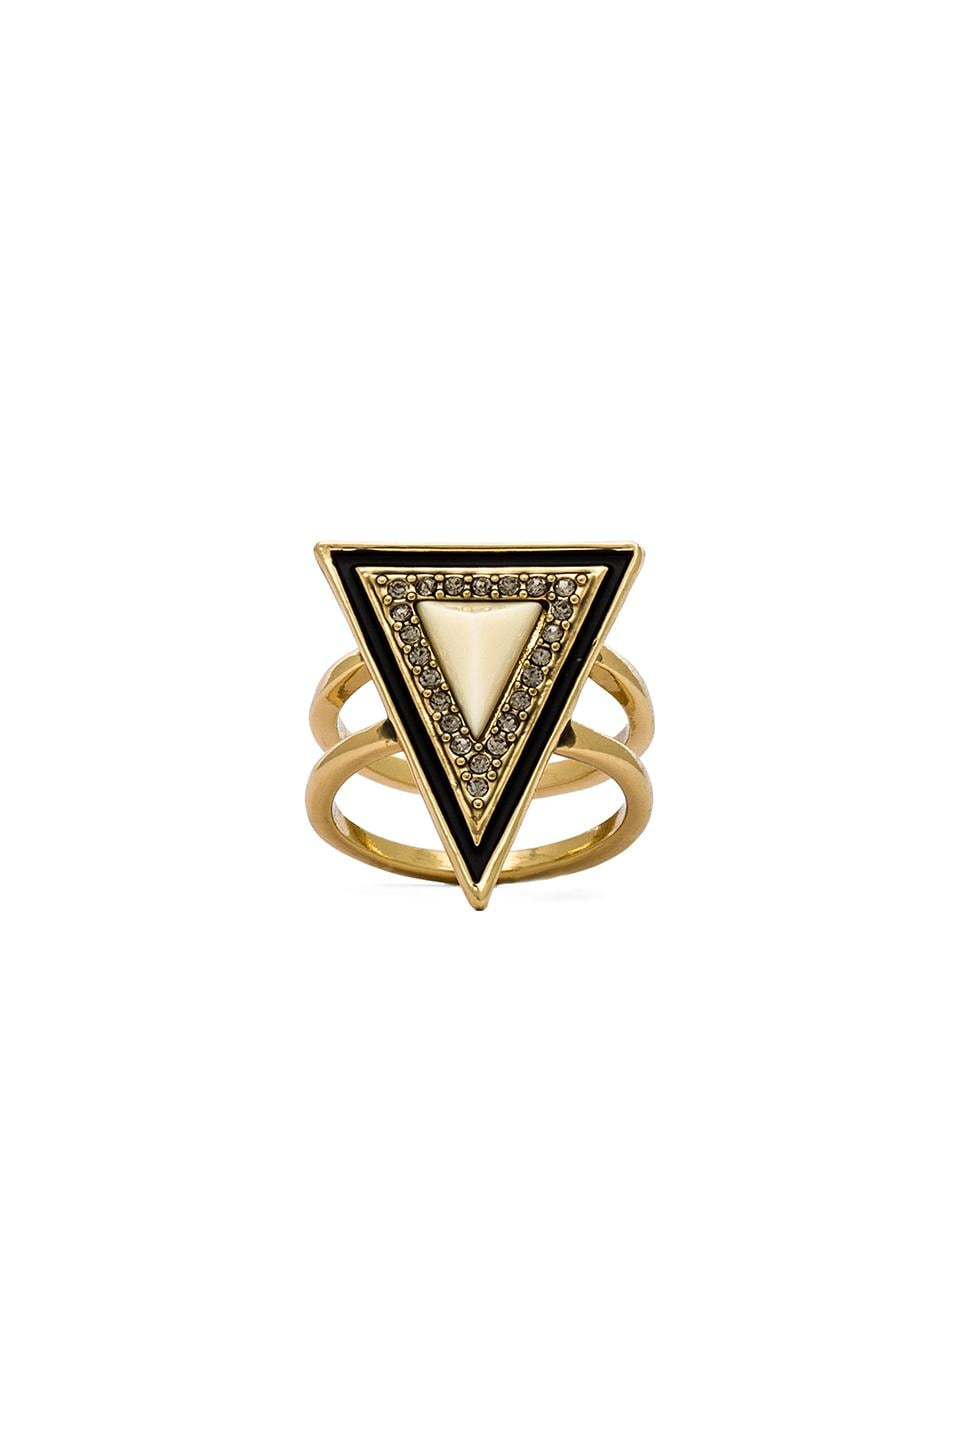 House of Harlow 1960 House of Harlow Teepee Triangle Ring in Gold & Ivory